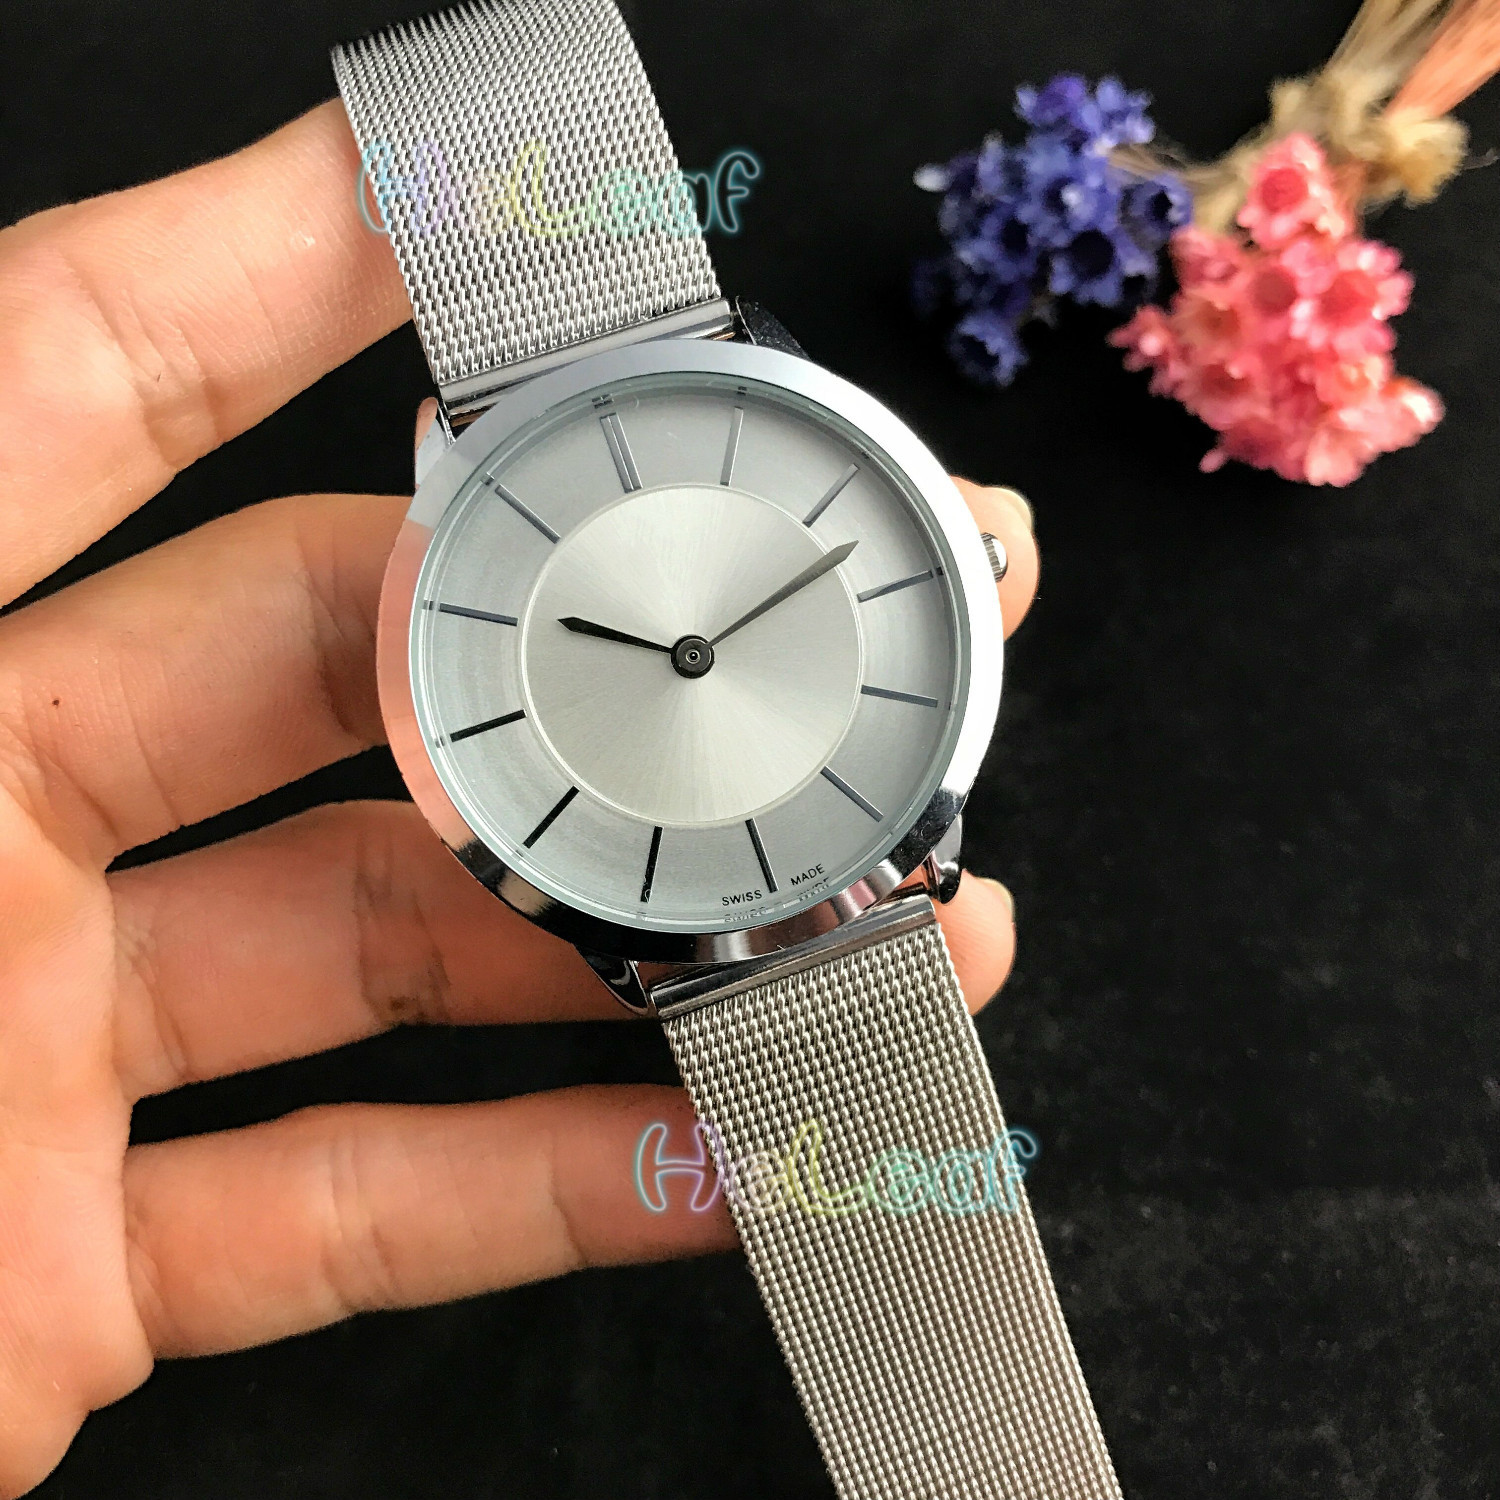 Fashion Silver Gold Stainless Men C Watch Quartz Wrist Watches BOY Famous Brand Male Clock Montre Femme Reloj